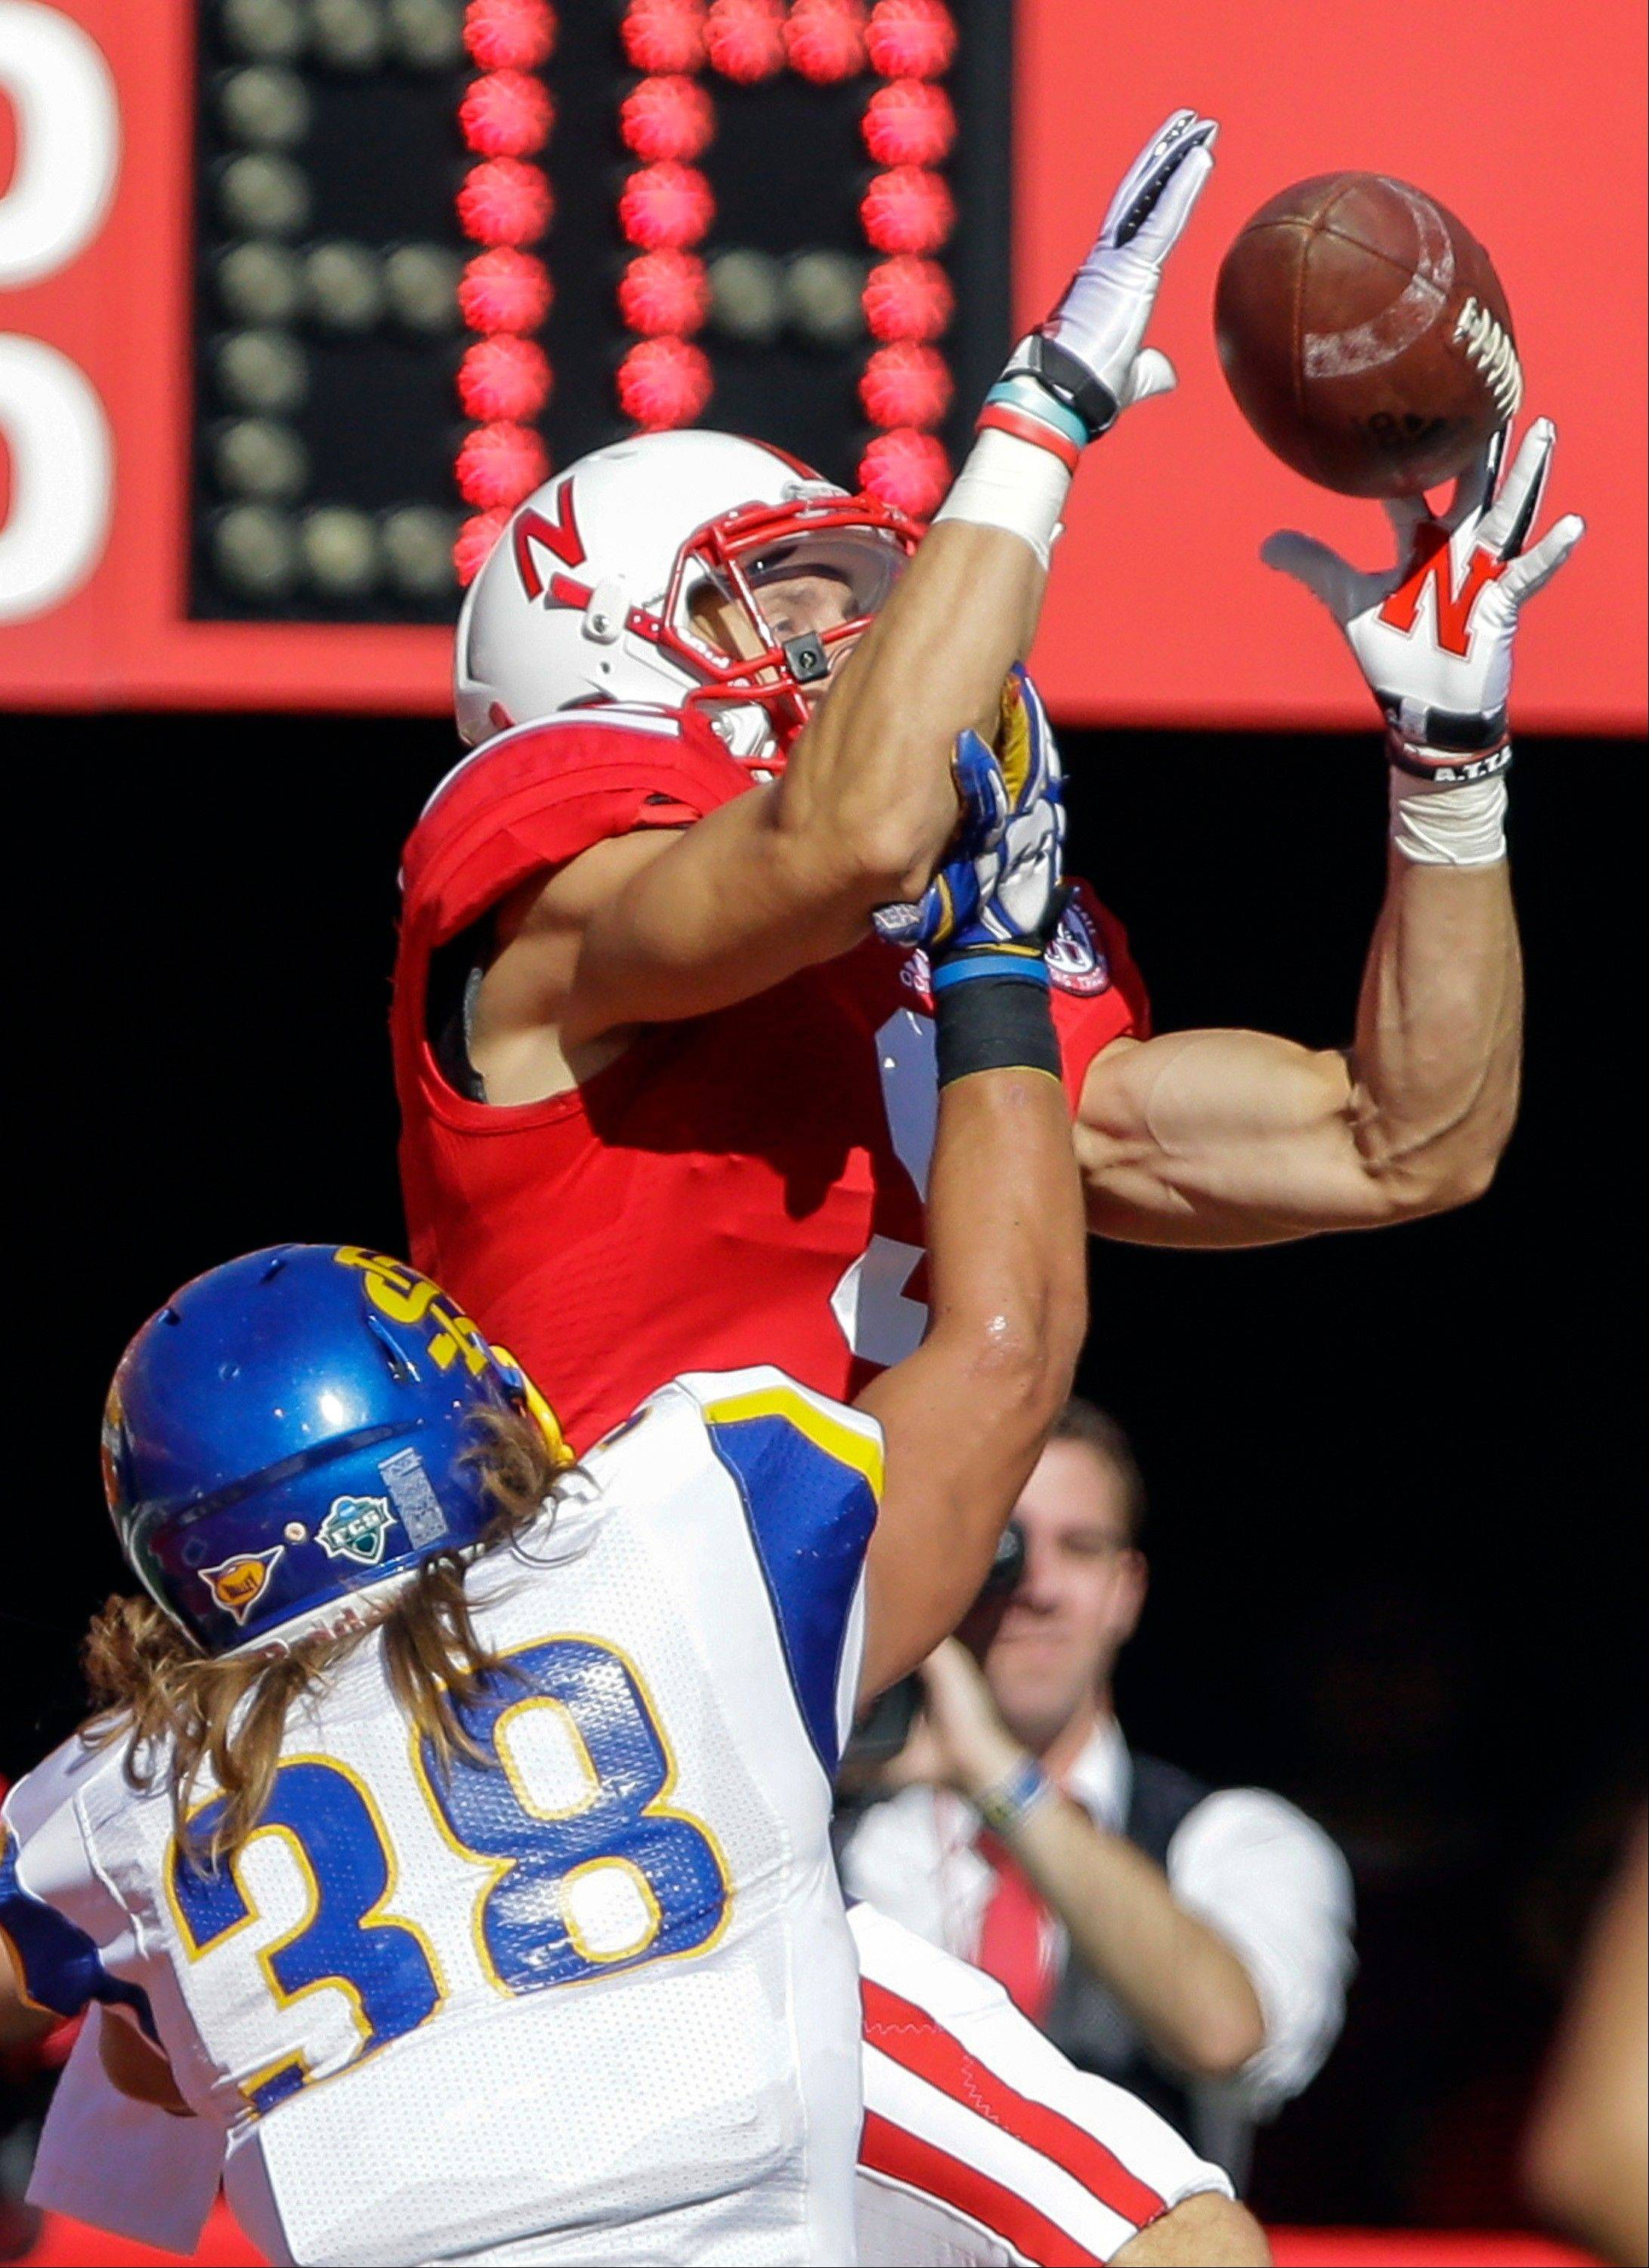 Nebraska wide receiver Sam Burtch, top, catches a touchdown pass over South Dakota State defensive back Jake Gentile in the first half of Saturday�s game in Lincoln, Neb.